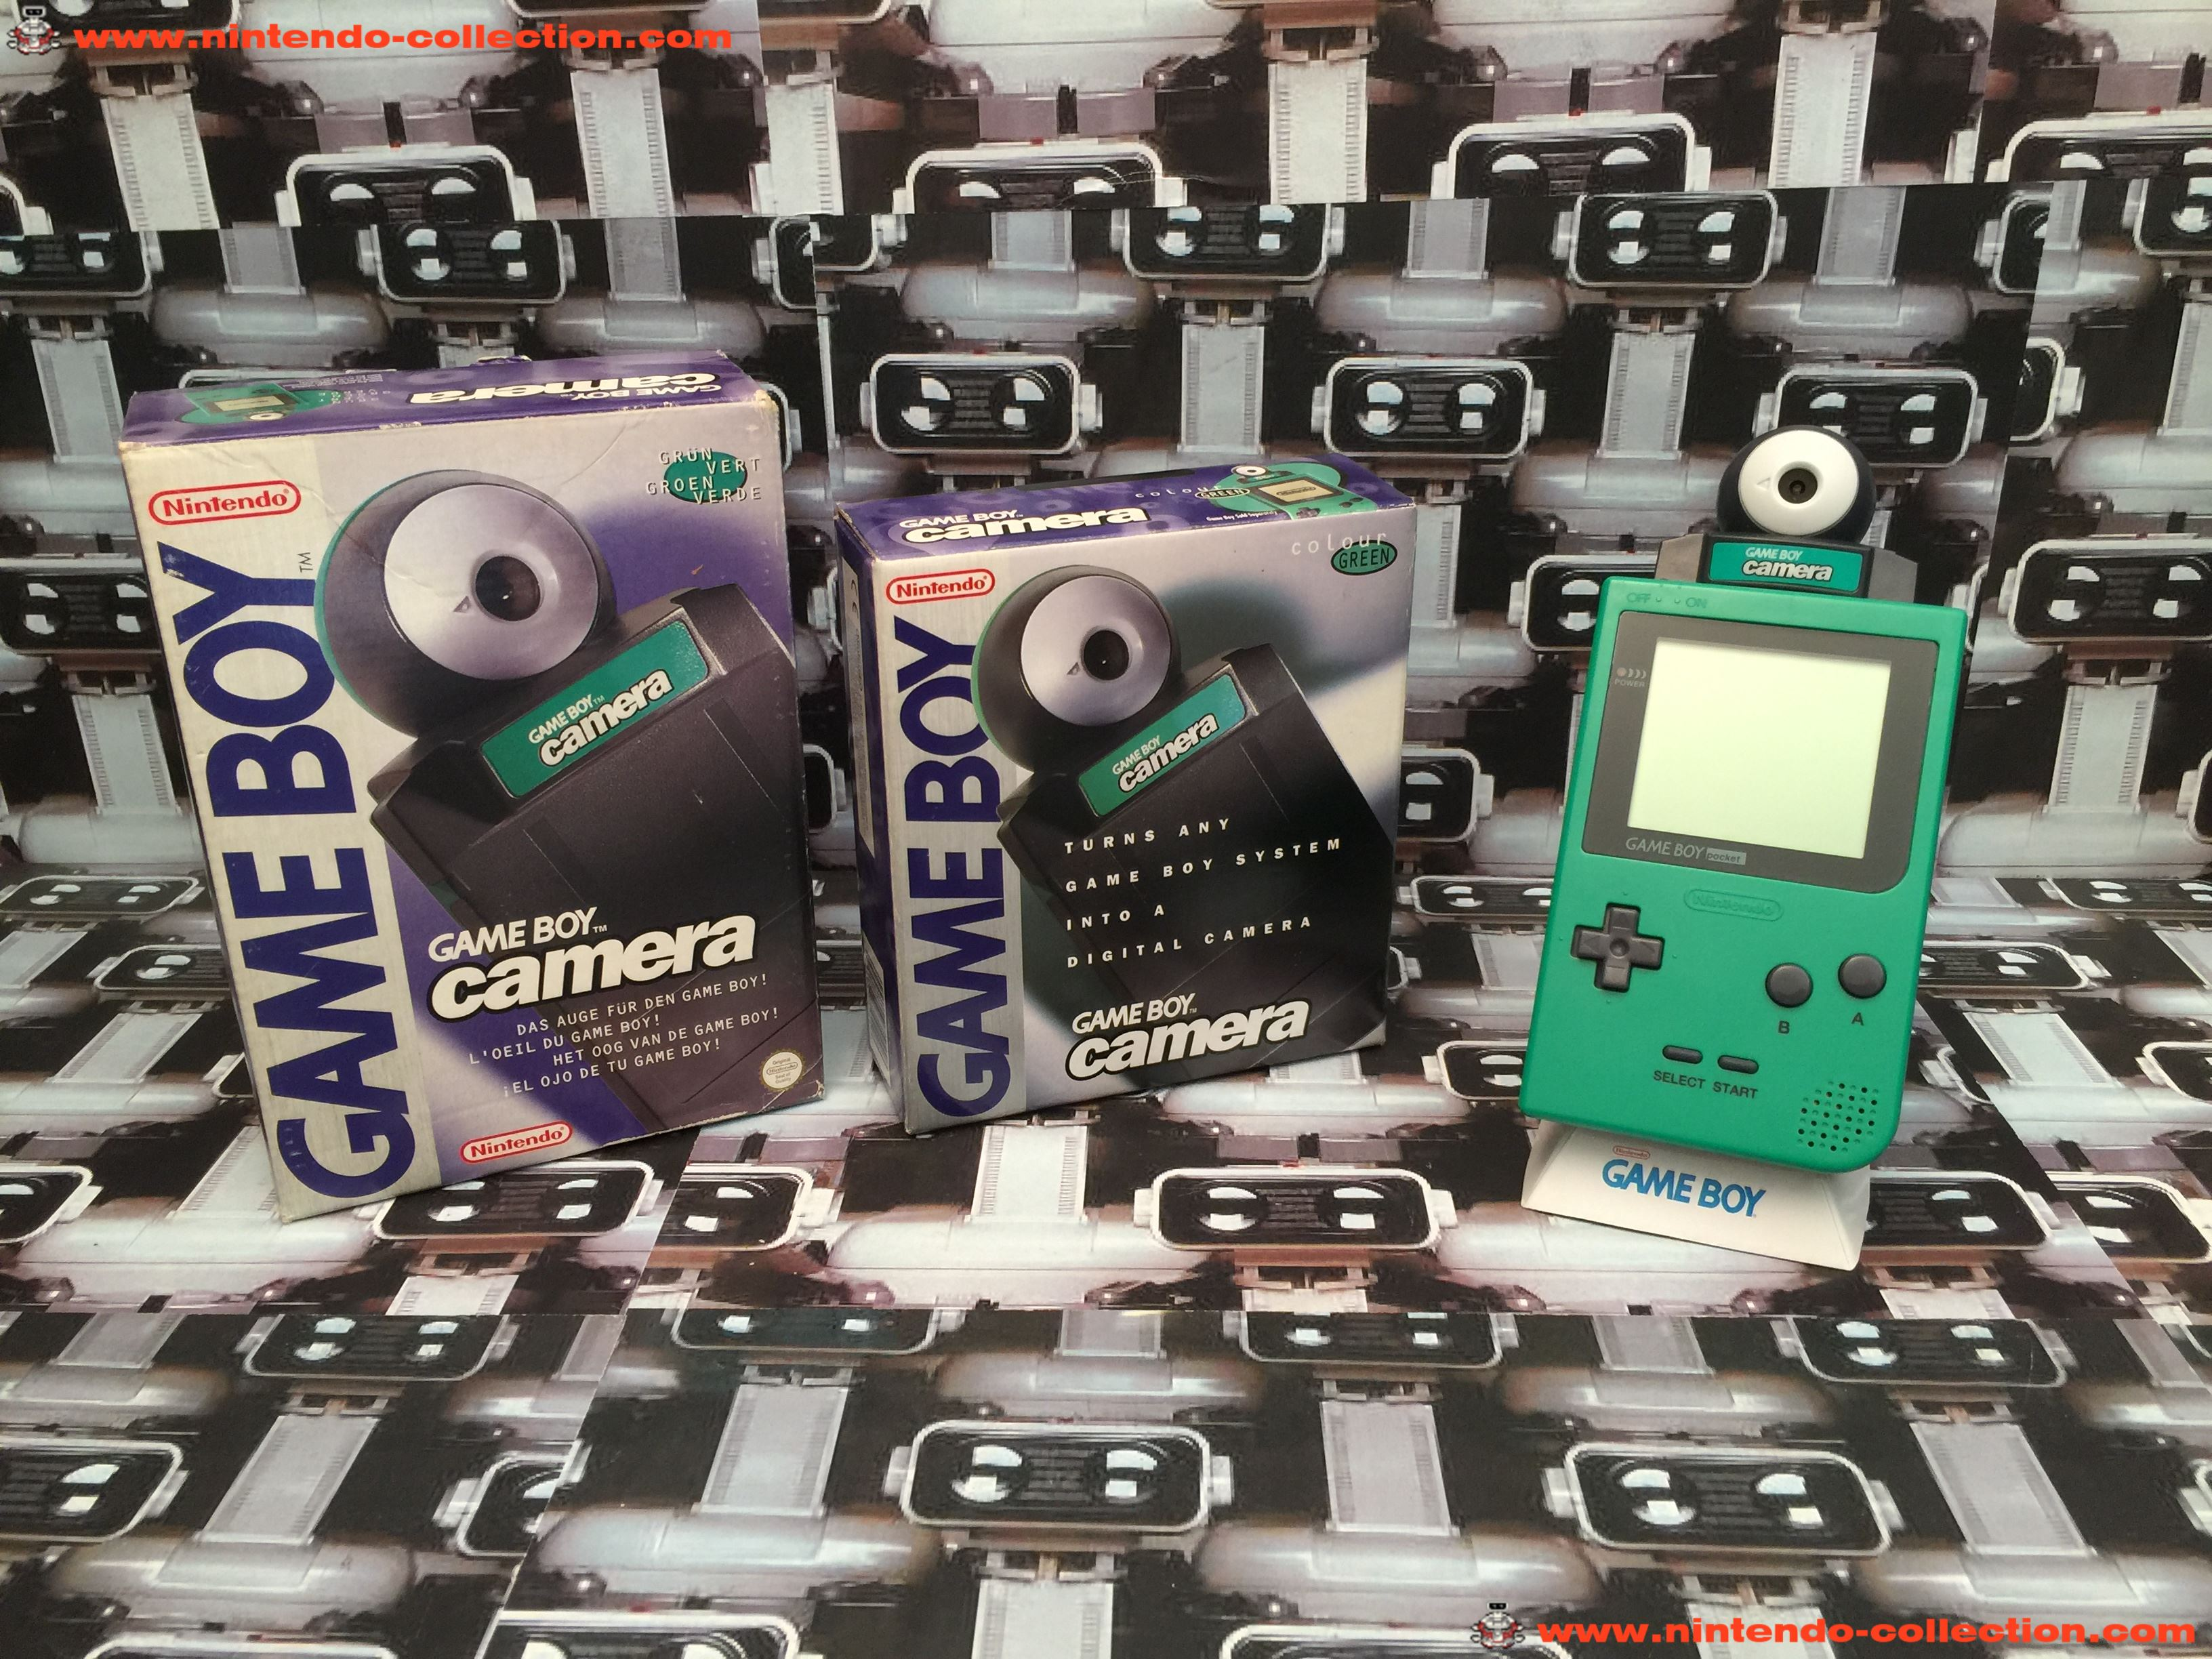 www.nintendo-collection.com - GameBoy Pocket + GameBoy Camera Green Verte UK Version Royaume-Uni + E